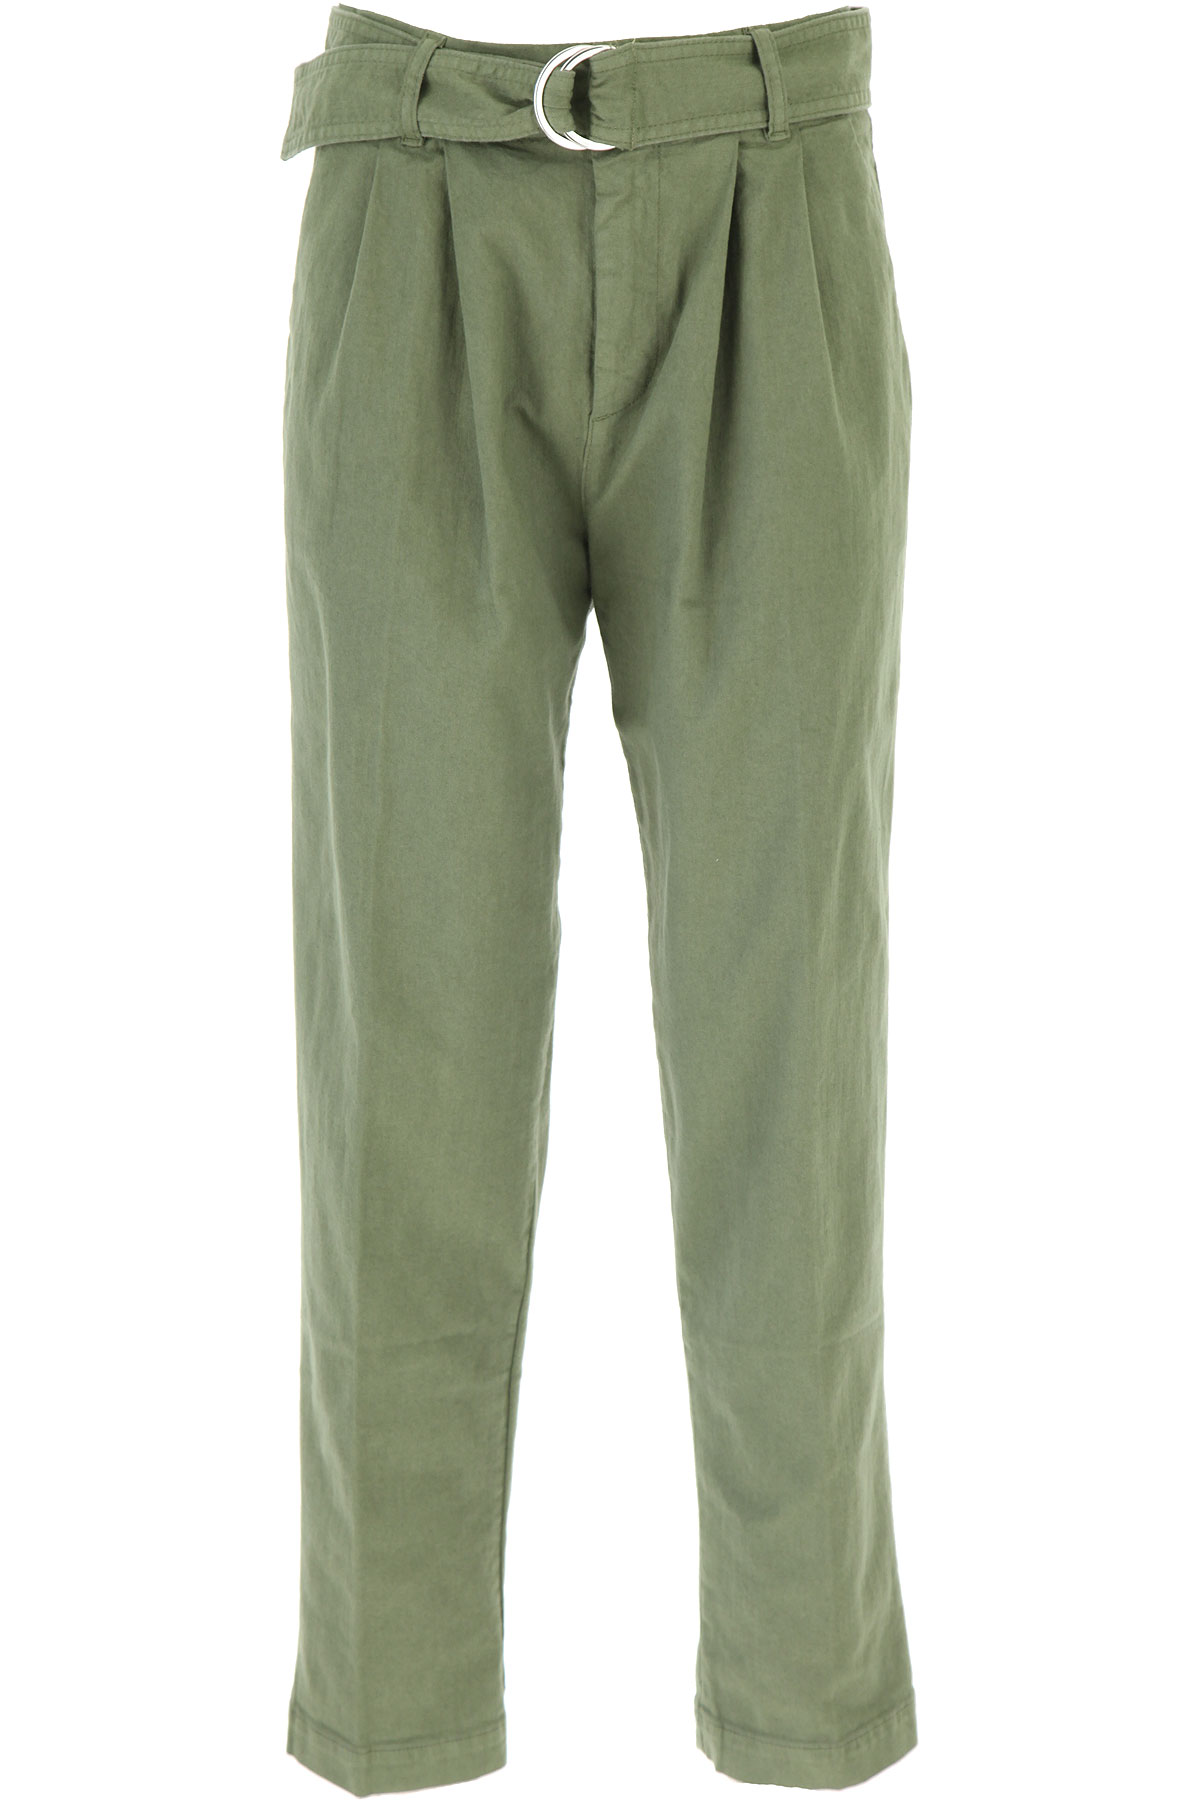 P.A.R.O.S.H. Pants for Women On Sale, Grass Green, Cotton, 2019, 26 28